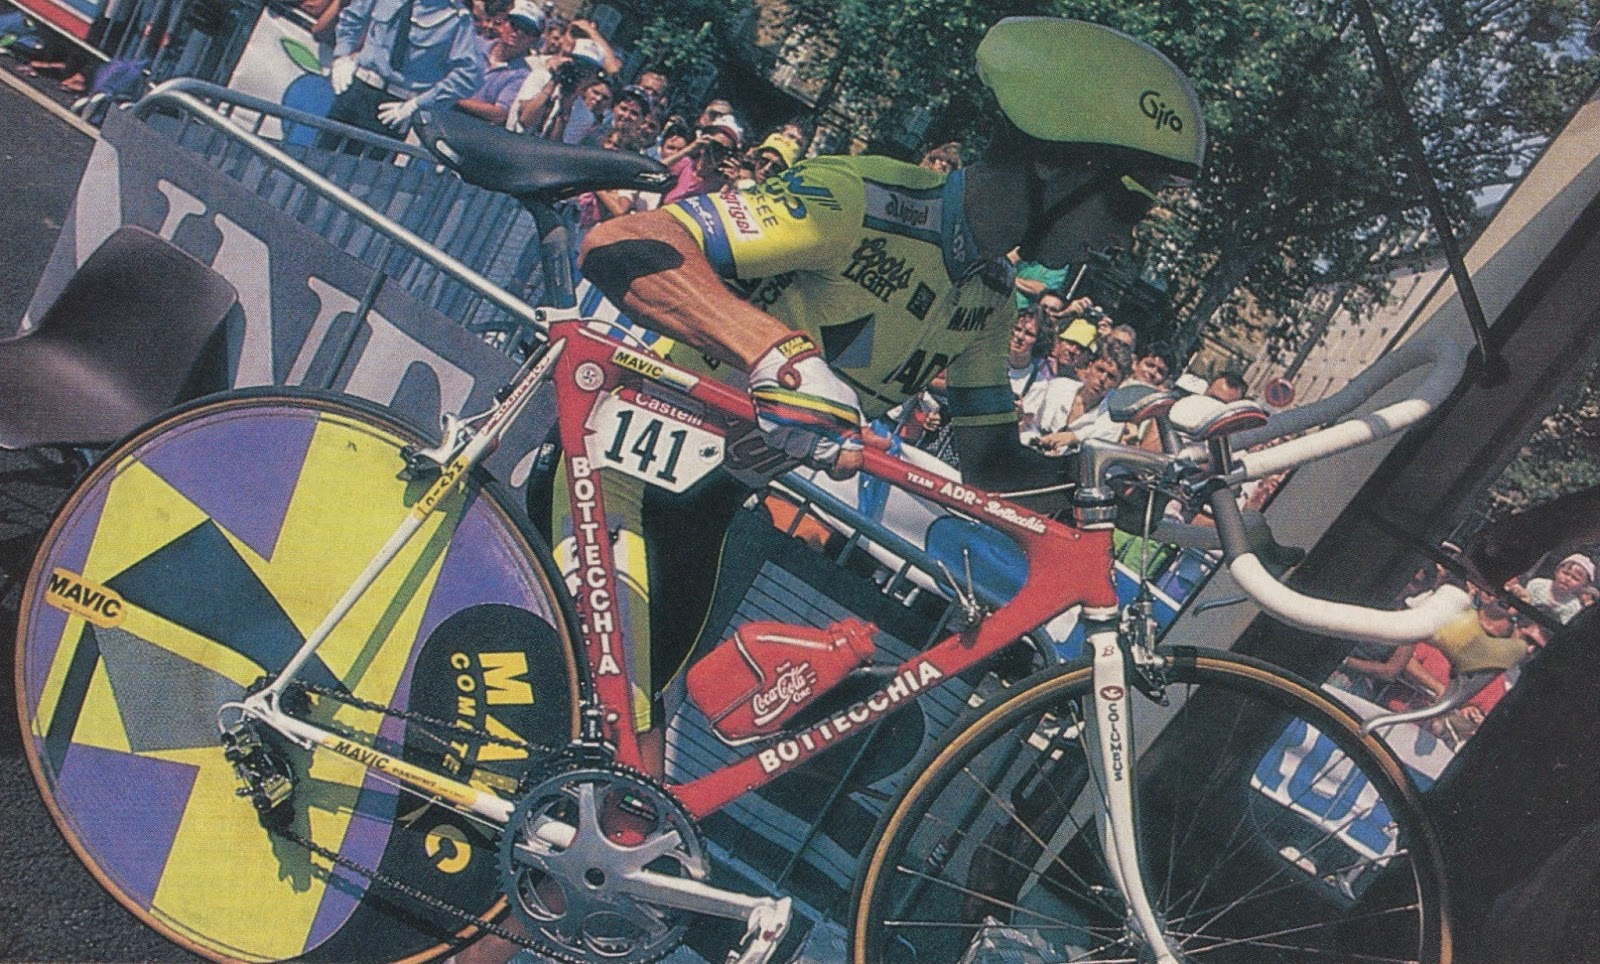 Did Raleigh Bikes Race In The Tour De France bikes used in the TdF